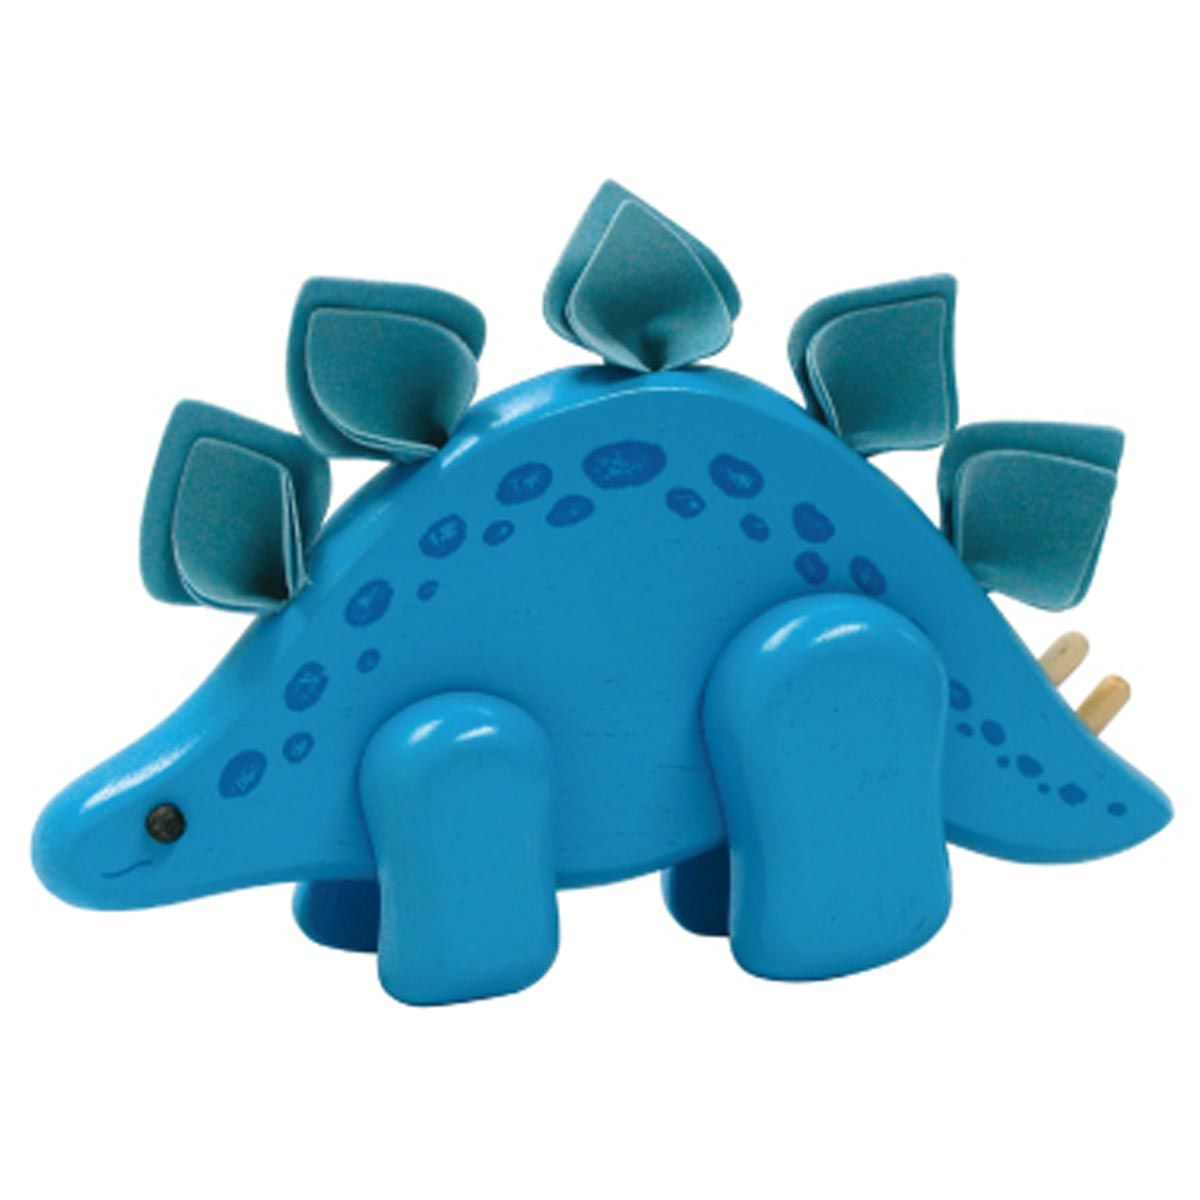 Kids Bedroom Furniture Kids Wooden Toys Online: Wooden Moveable Dinosaurs Now Available Online At The